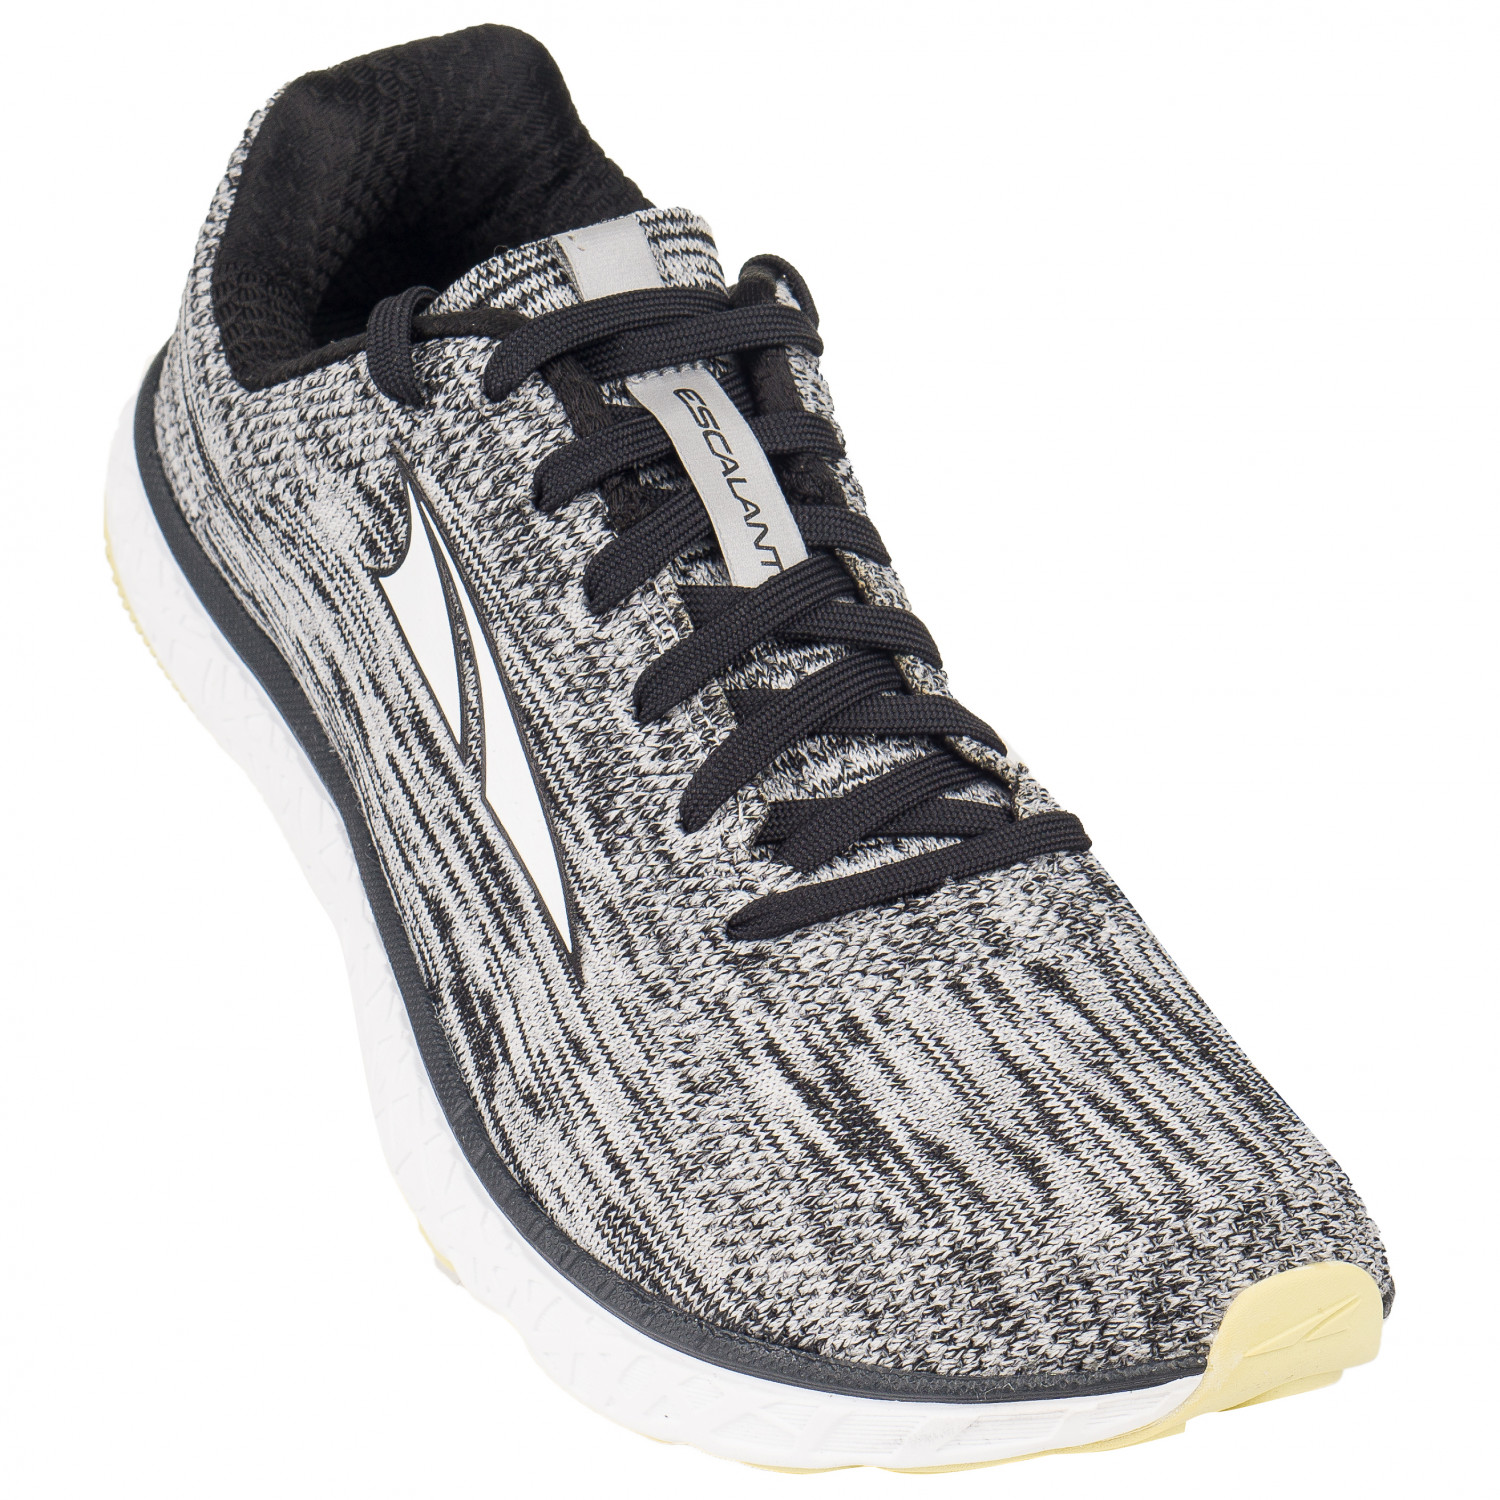 new product f549f f7fac Altra - Women's Escalante 1.5 - Running shoes - Gray   6,5 (US)